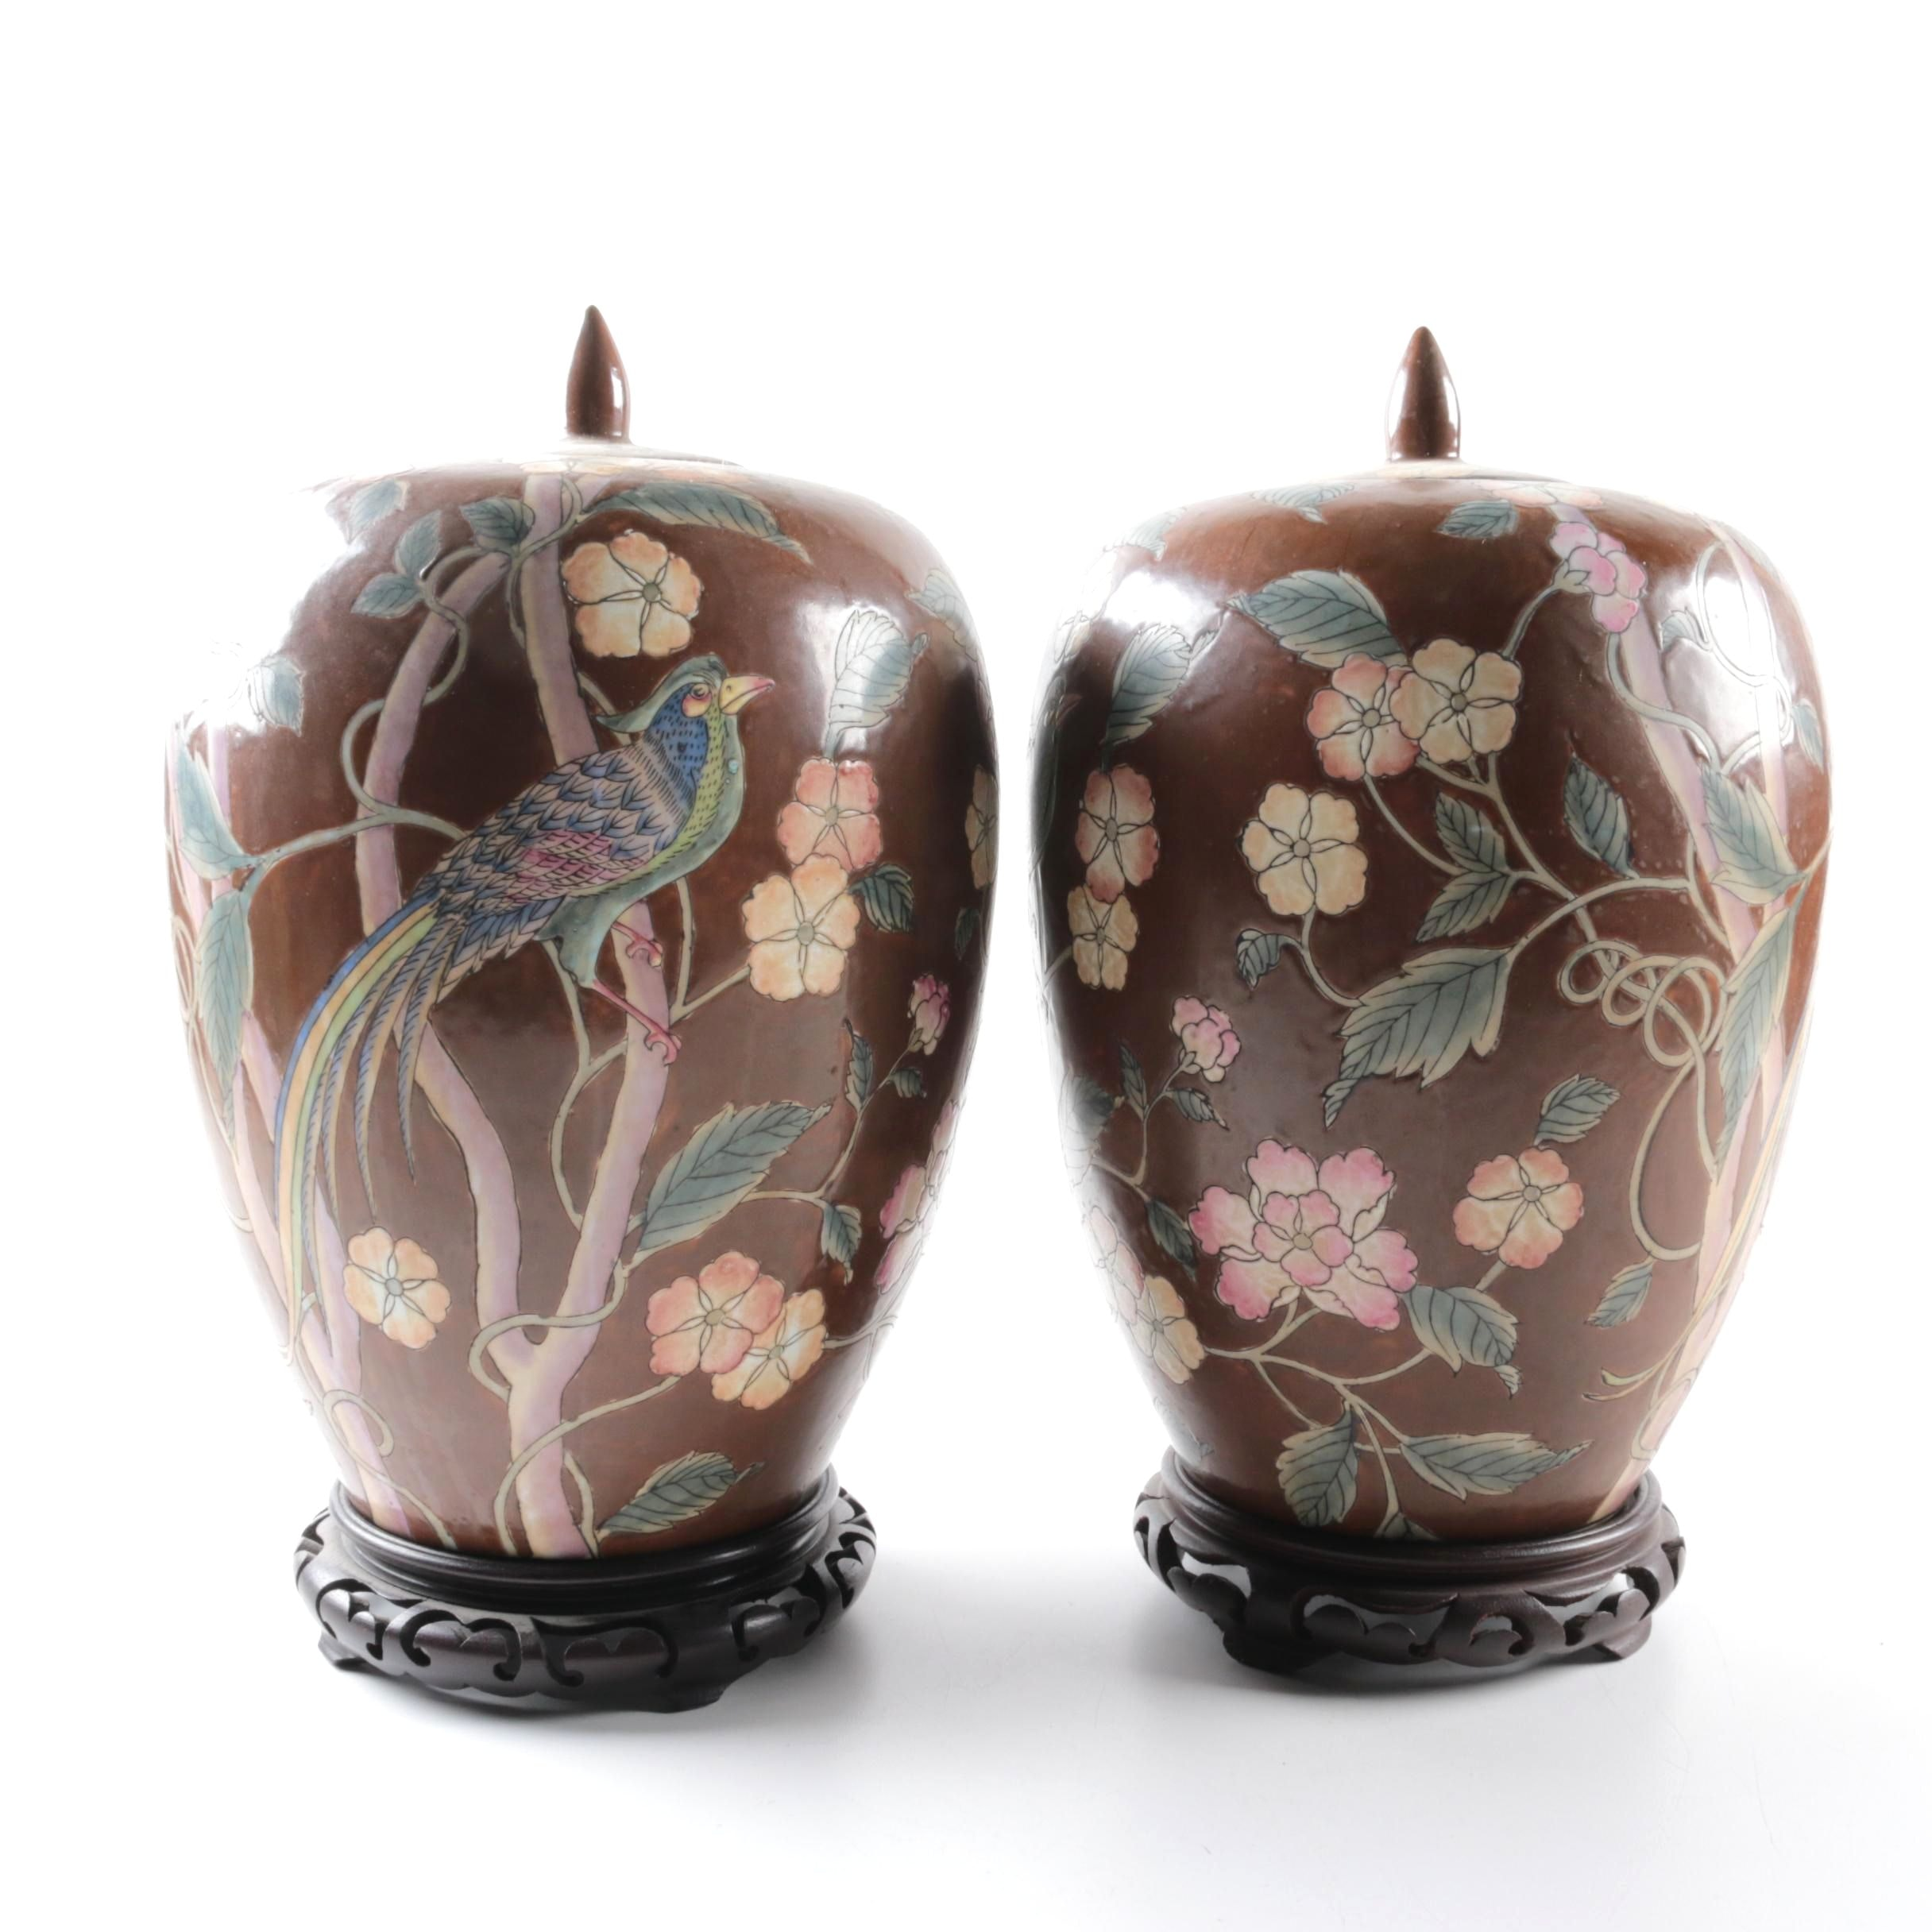 ChineseBird and Floral Motif Porcelain Ginger Jars with Wooden Stands